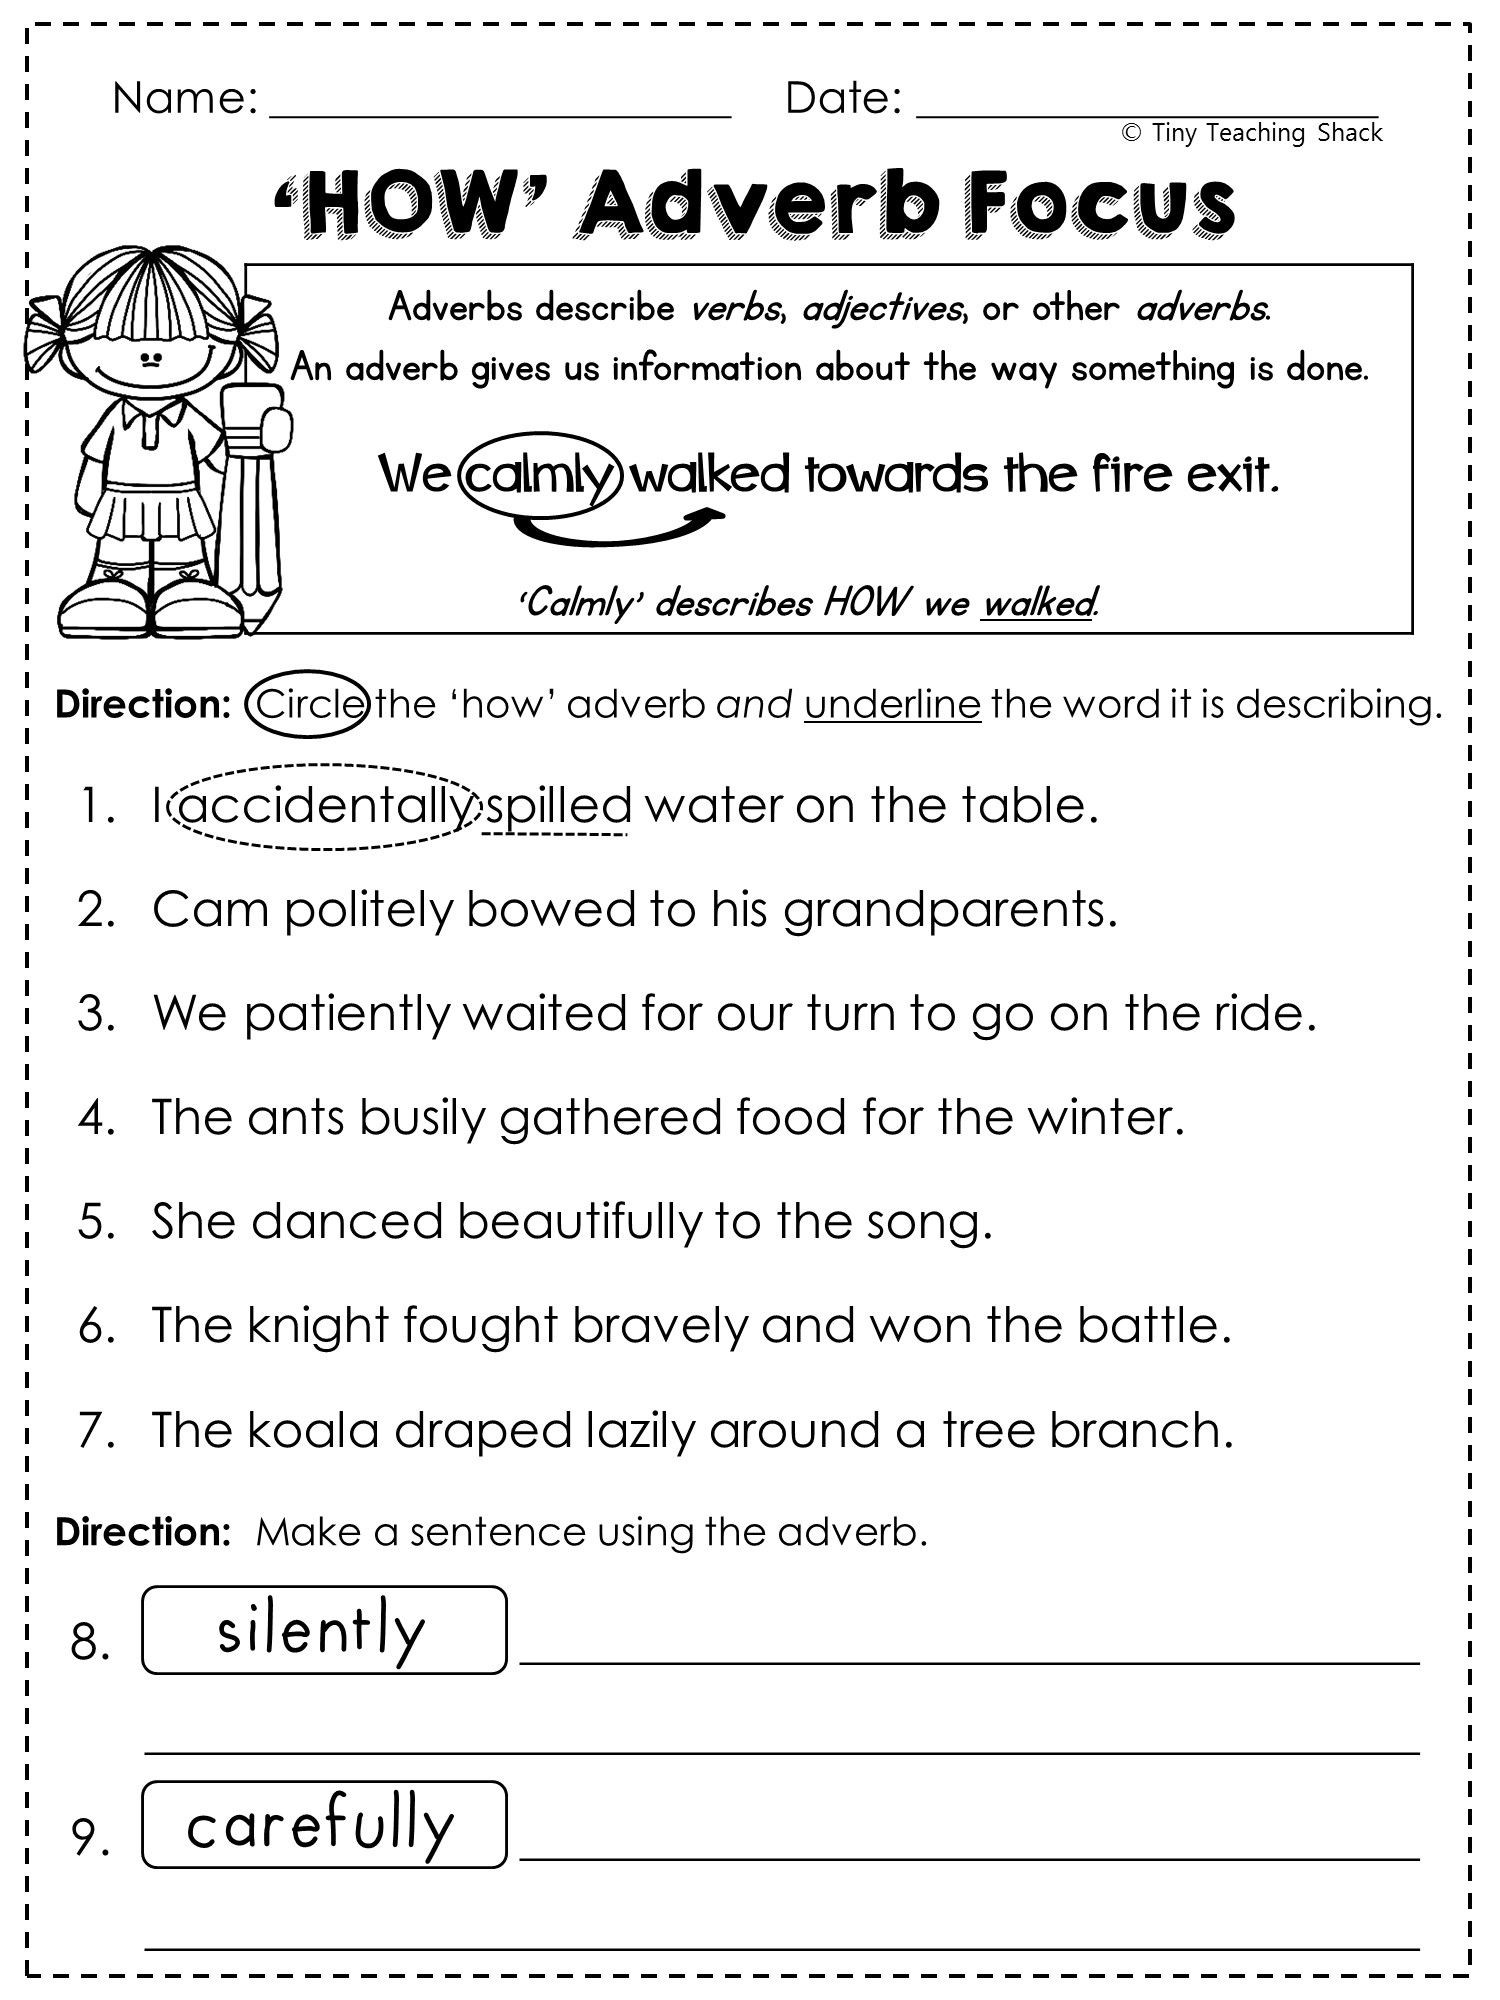 Grammar Worksheets for 2nd Grade Math Worksheet Grade English Worksheets Printable and